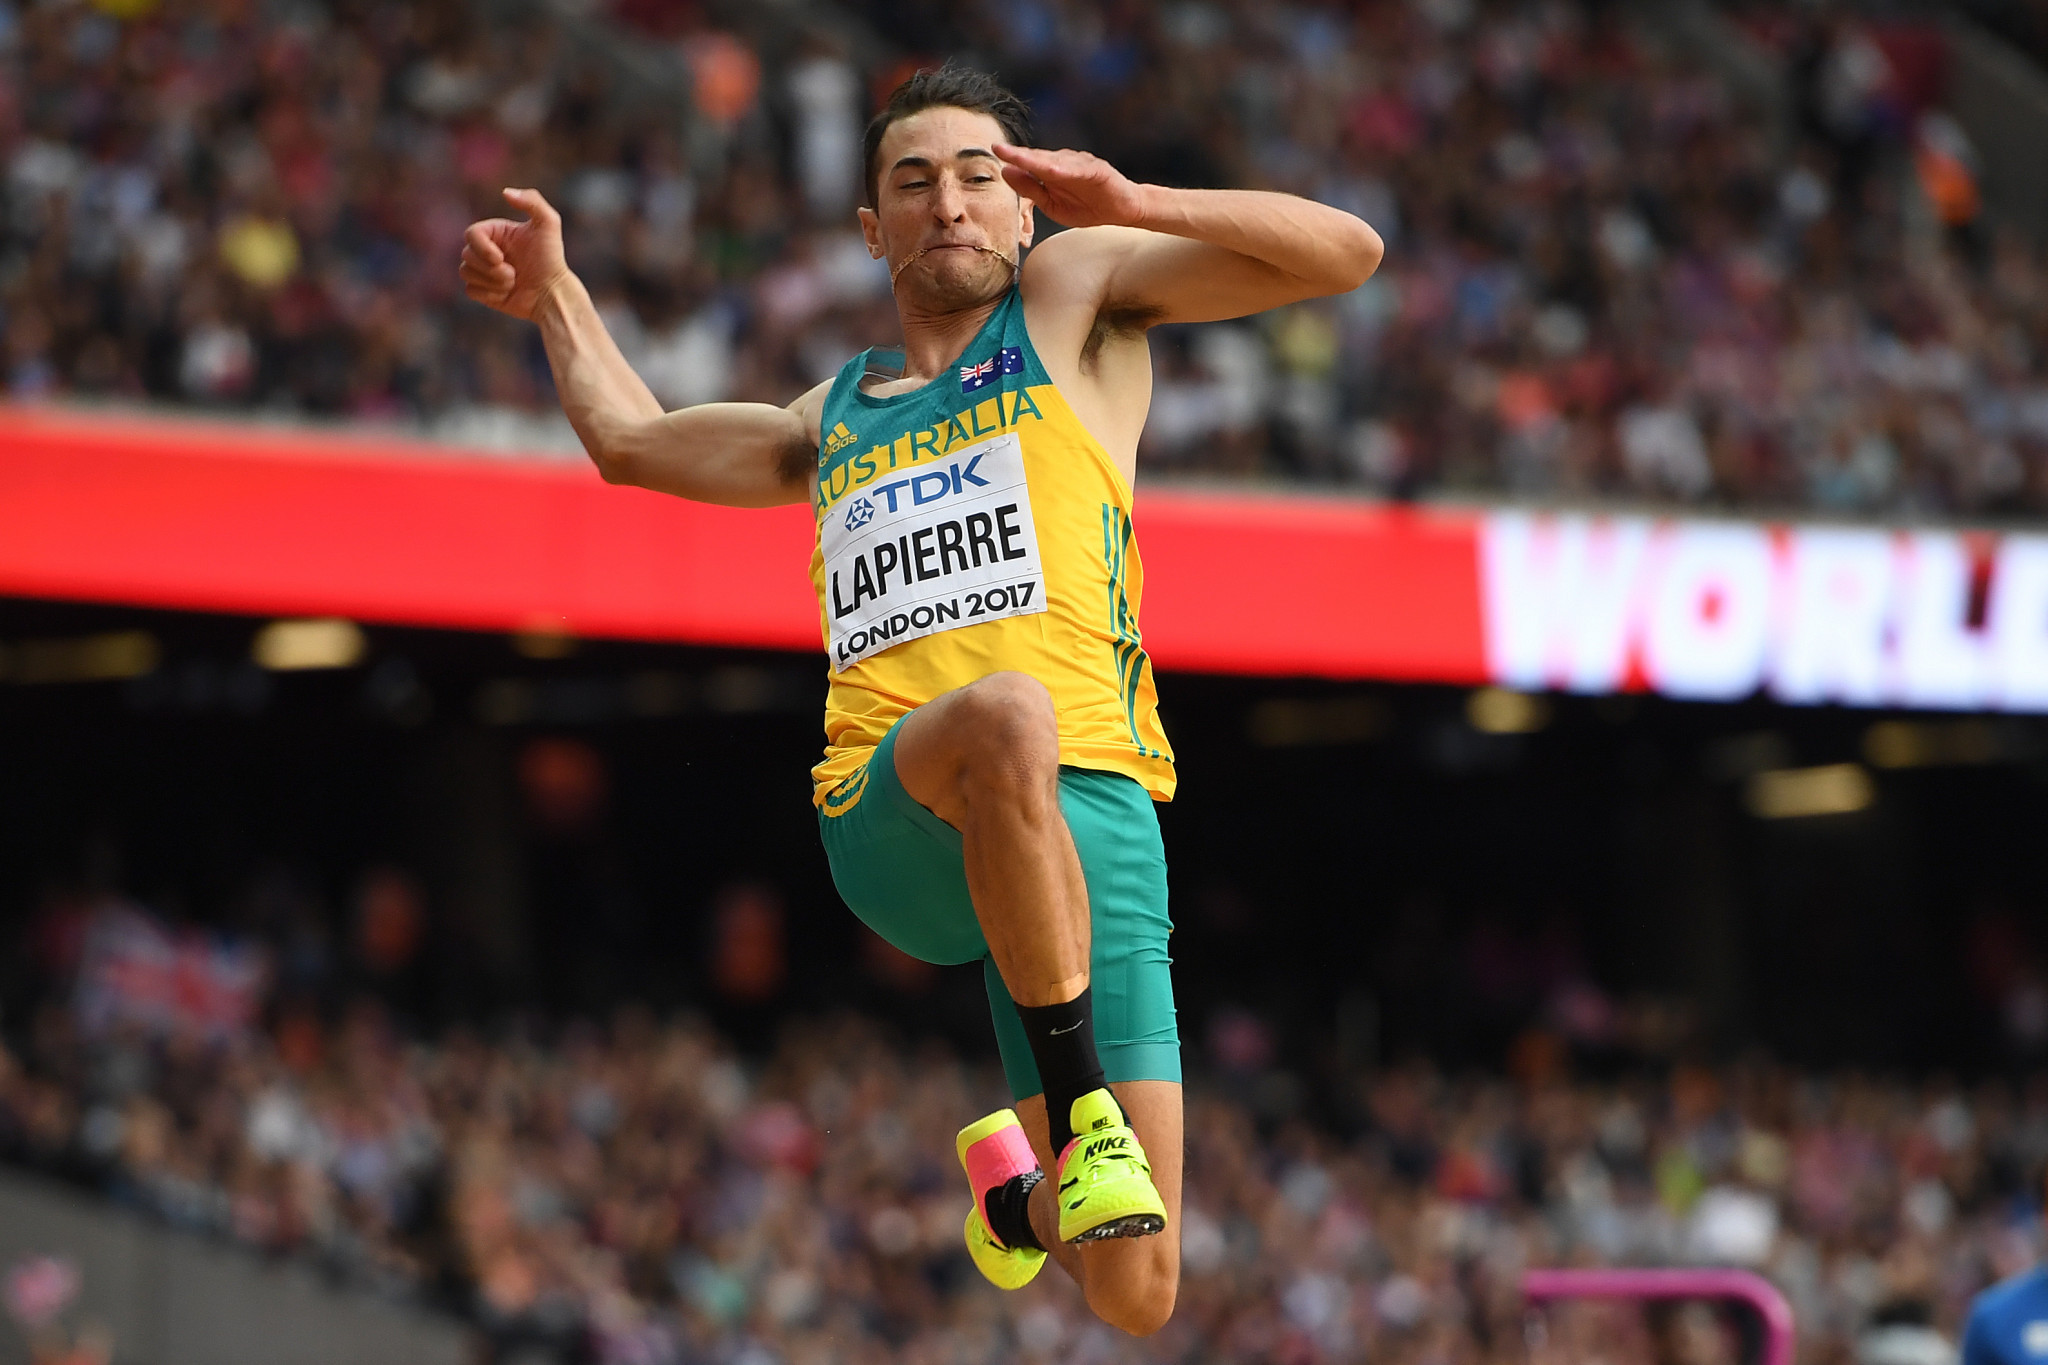 Long jumper Fabrice Lapierre is one of five athletes who are set to appear at their fourth Commonwealth Games ©Getty Images